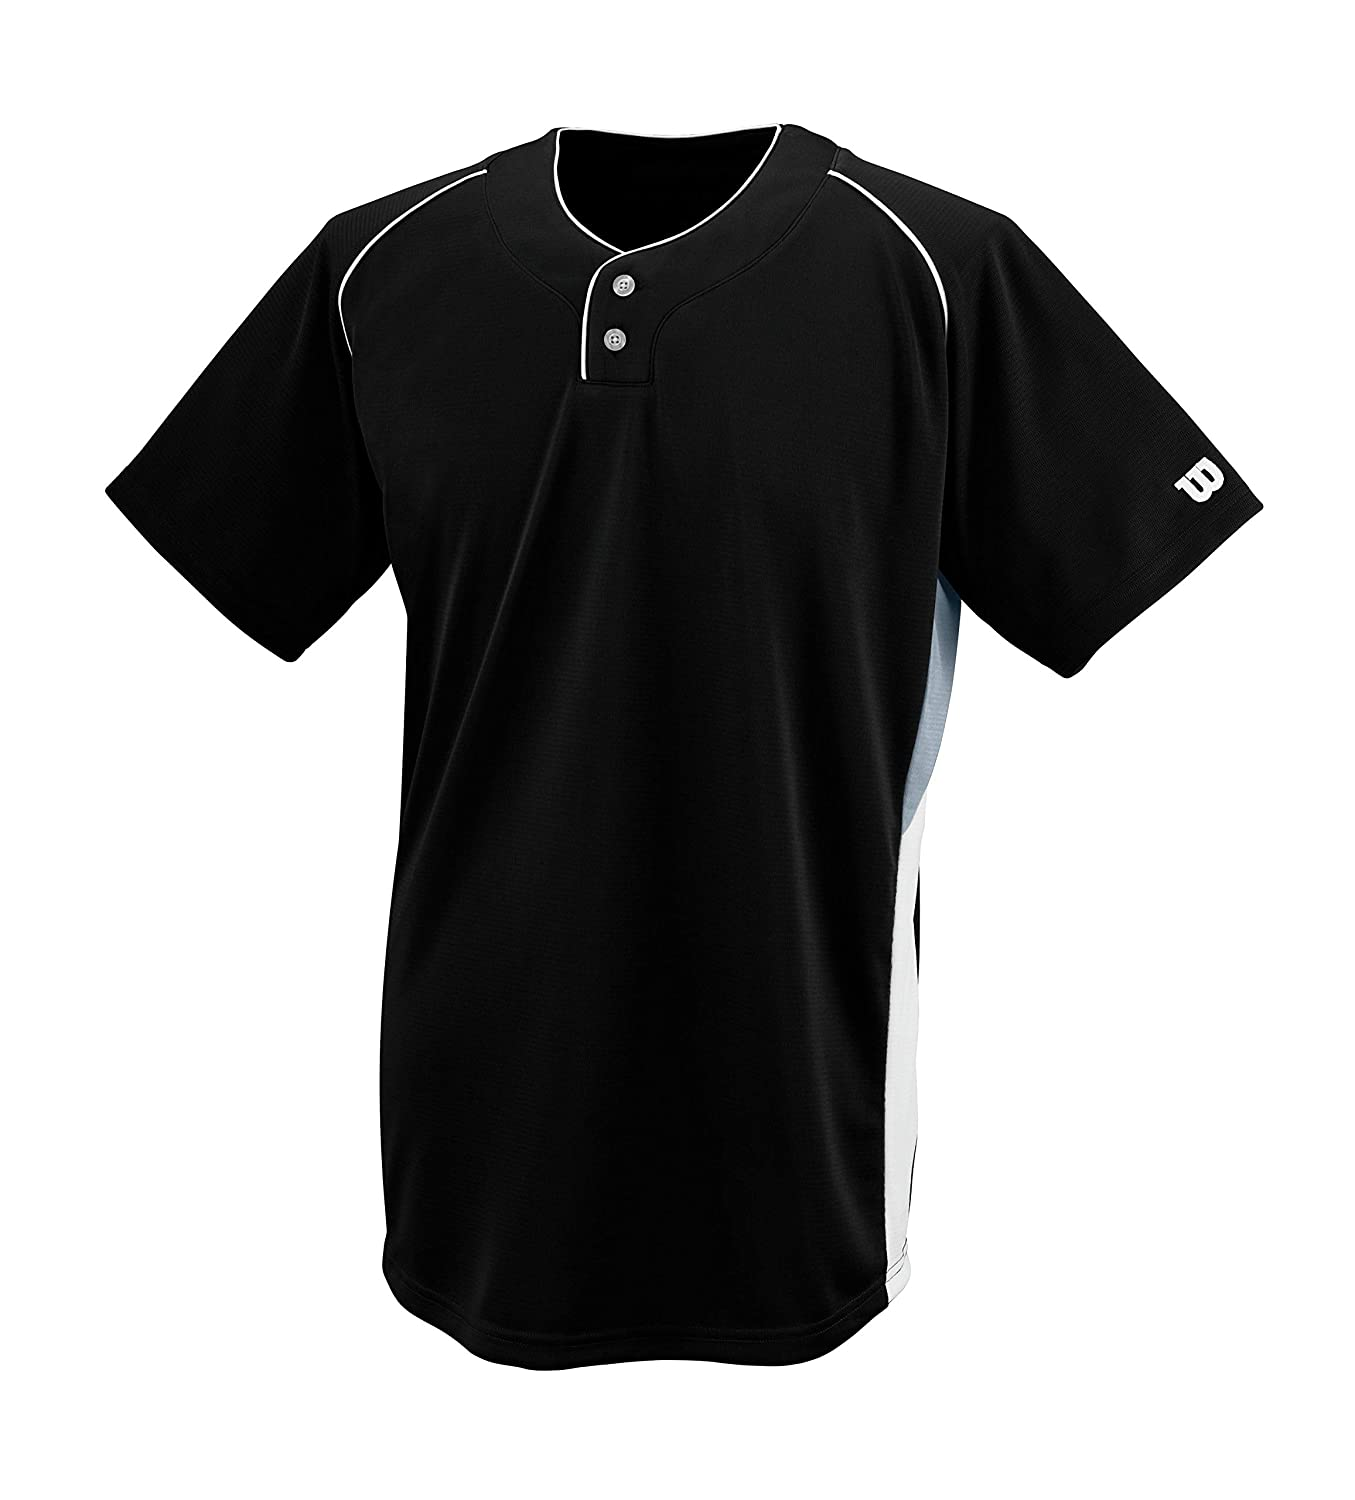 Black XXLarge Wilson Sporting Goods Double Bar Mesh 2Button Jersey Scarlet